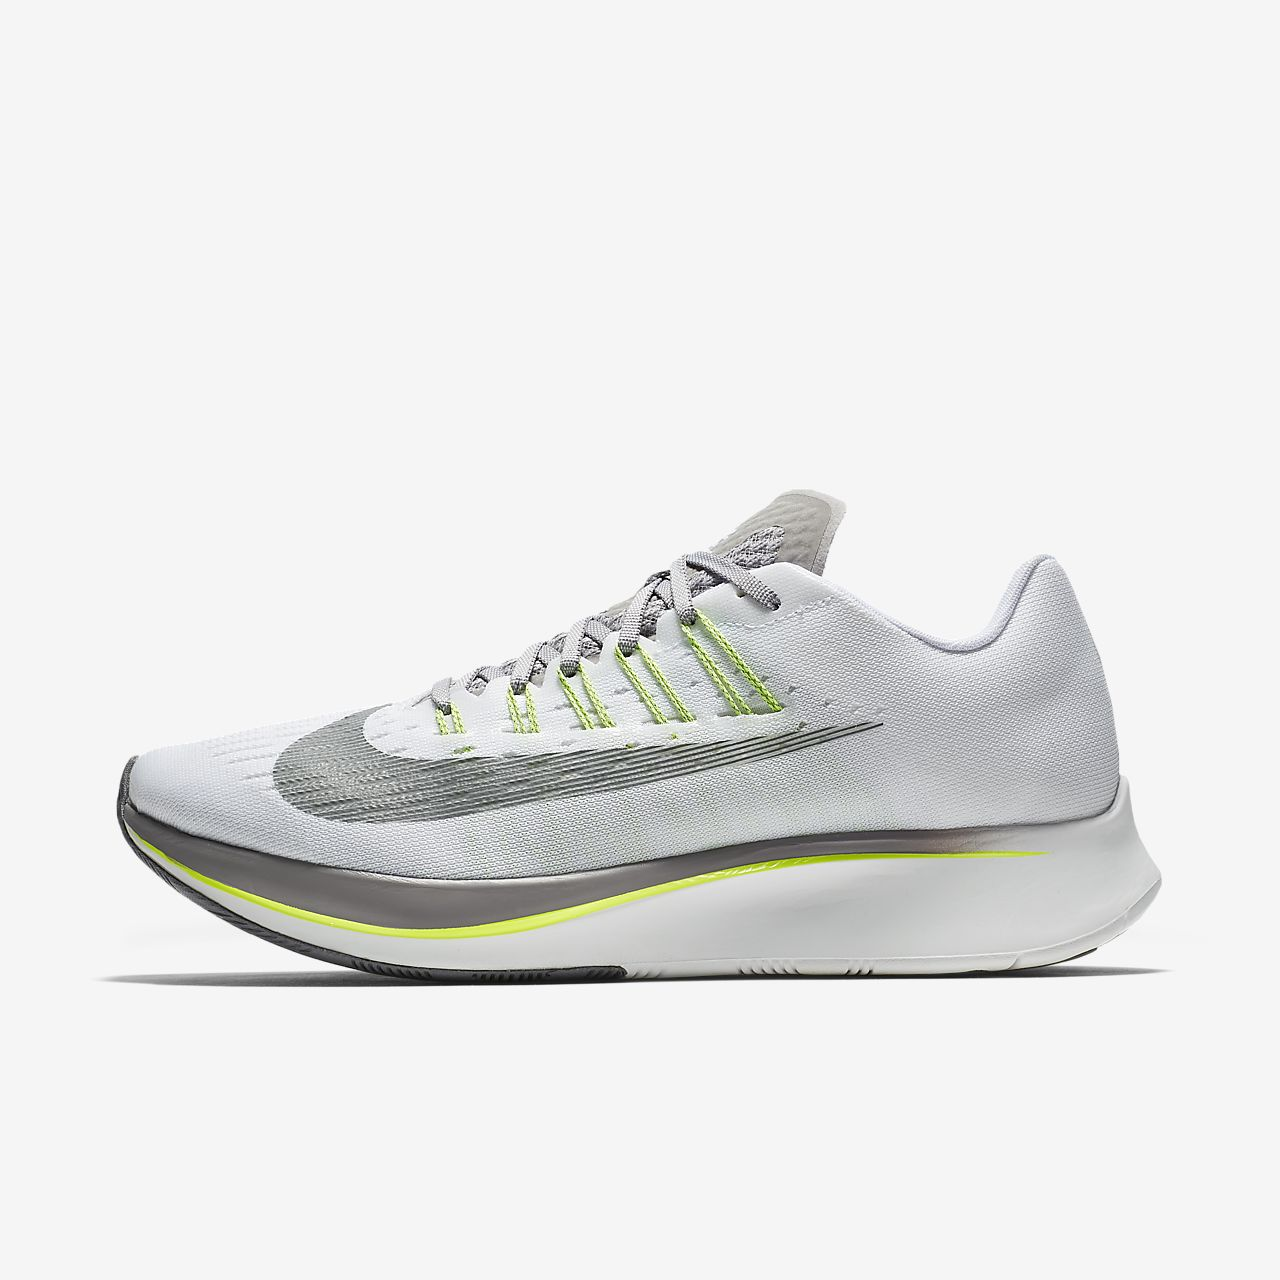 sports shoes a38b4 b65ae ... Nike Zoom Fly Men s Running Shoe